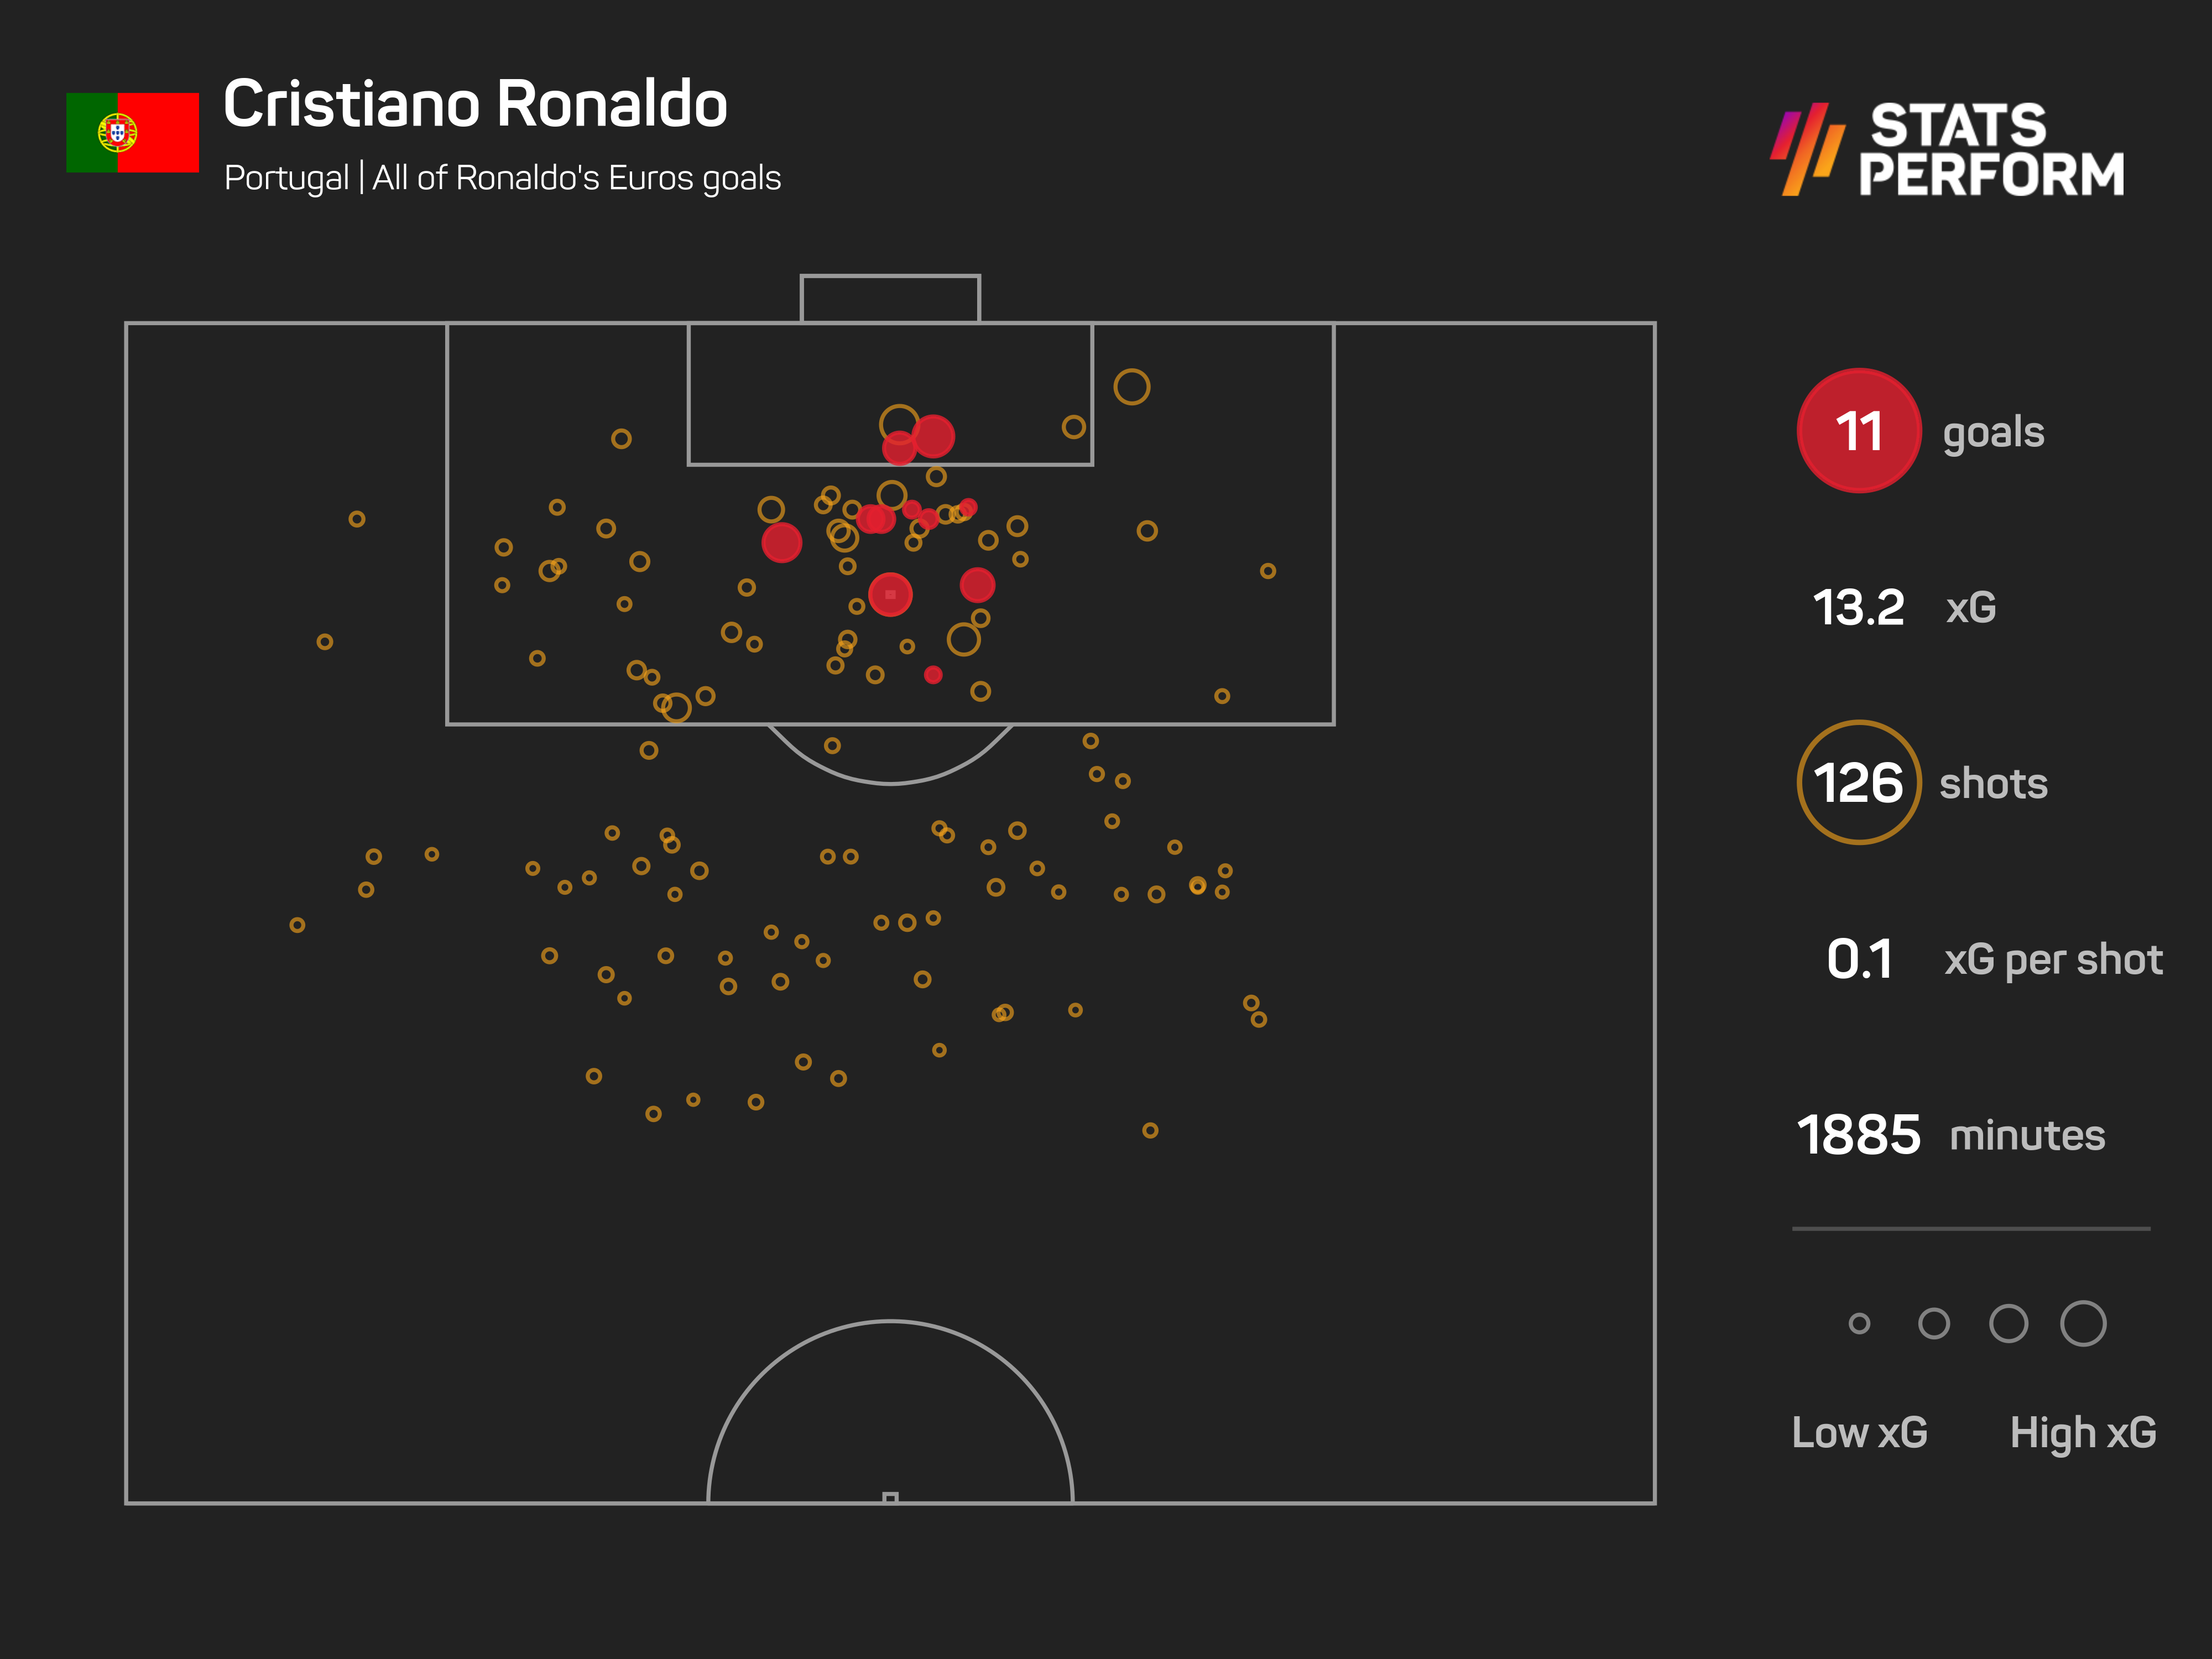 All of Ronaldo's Euros goals have been scored from inside the penalty area